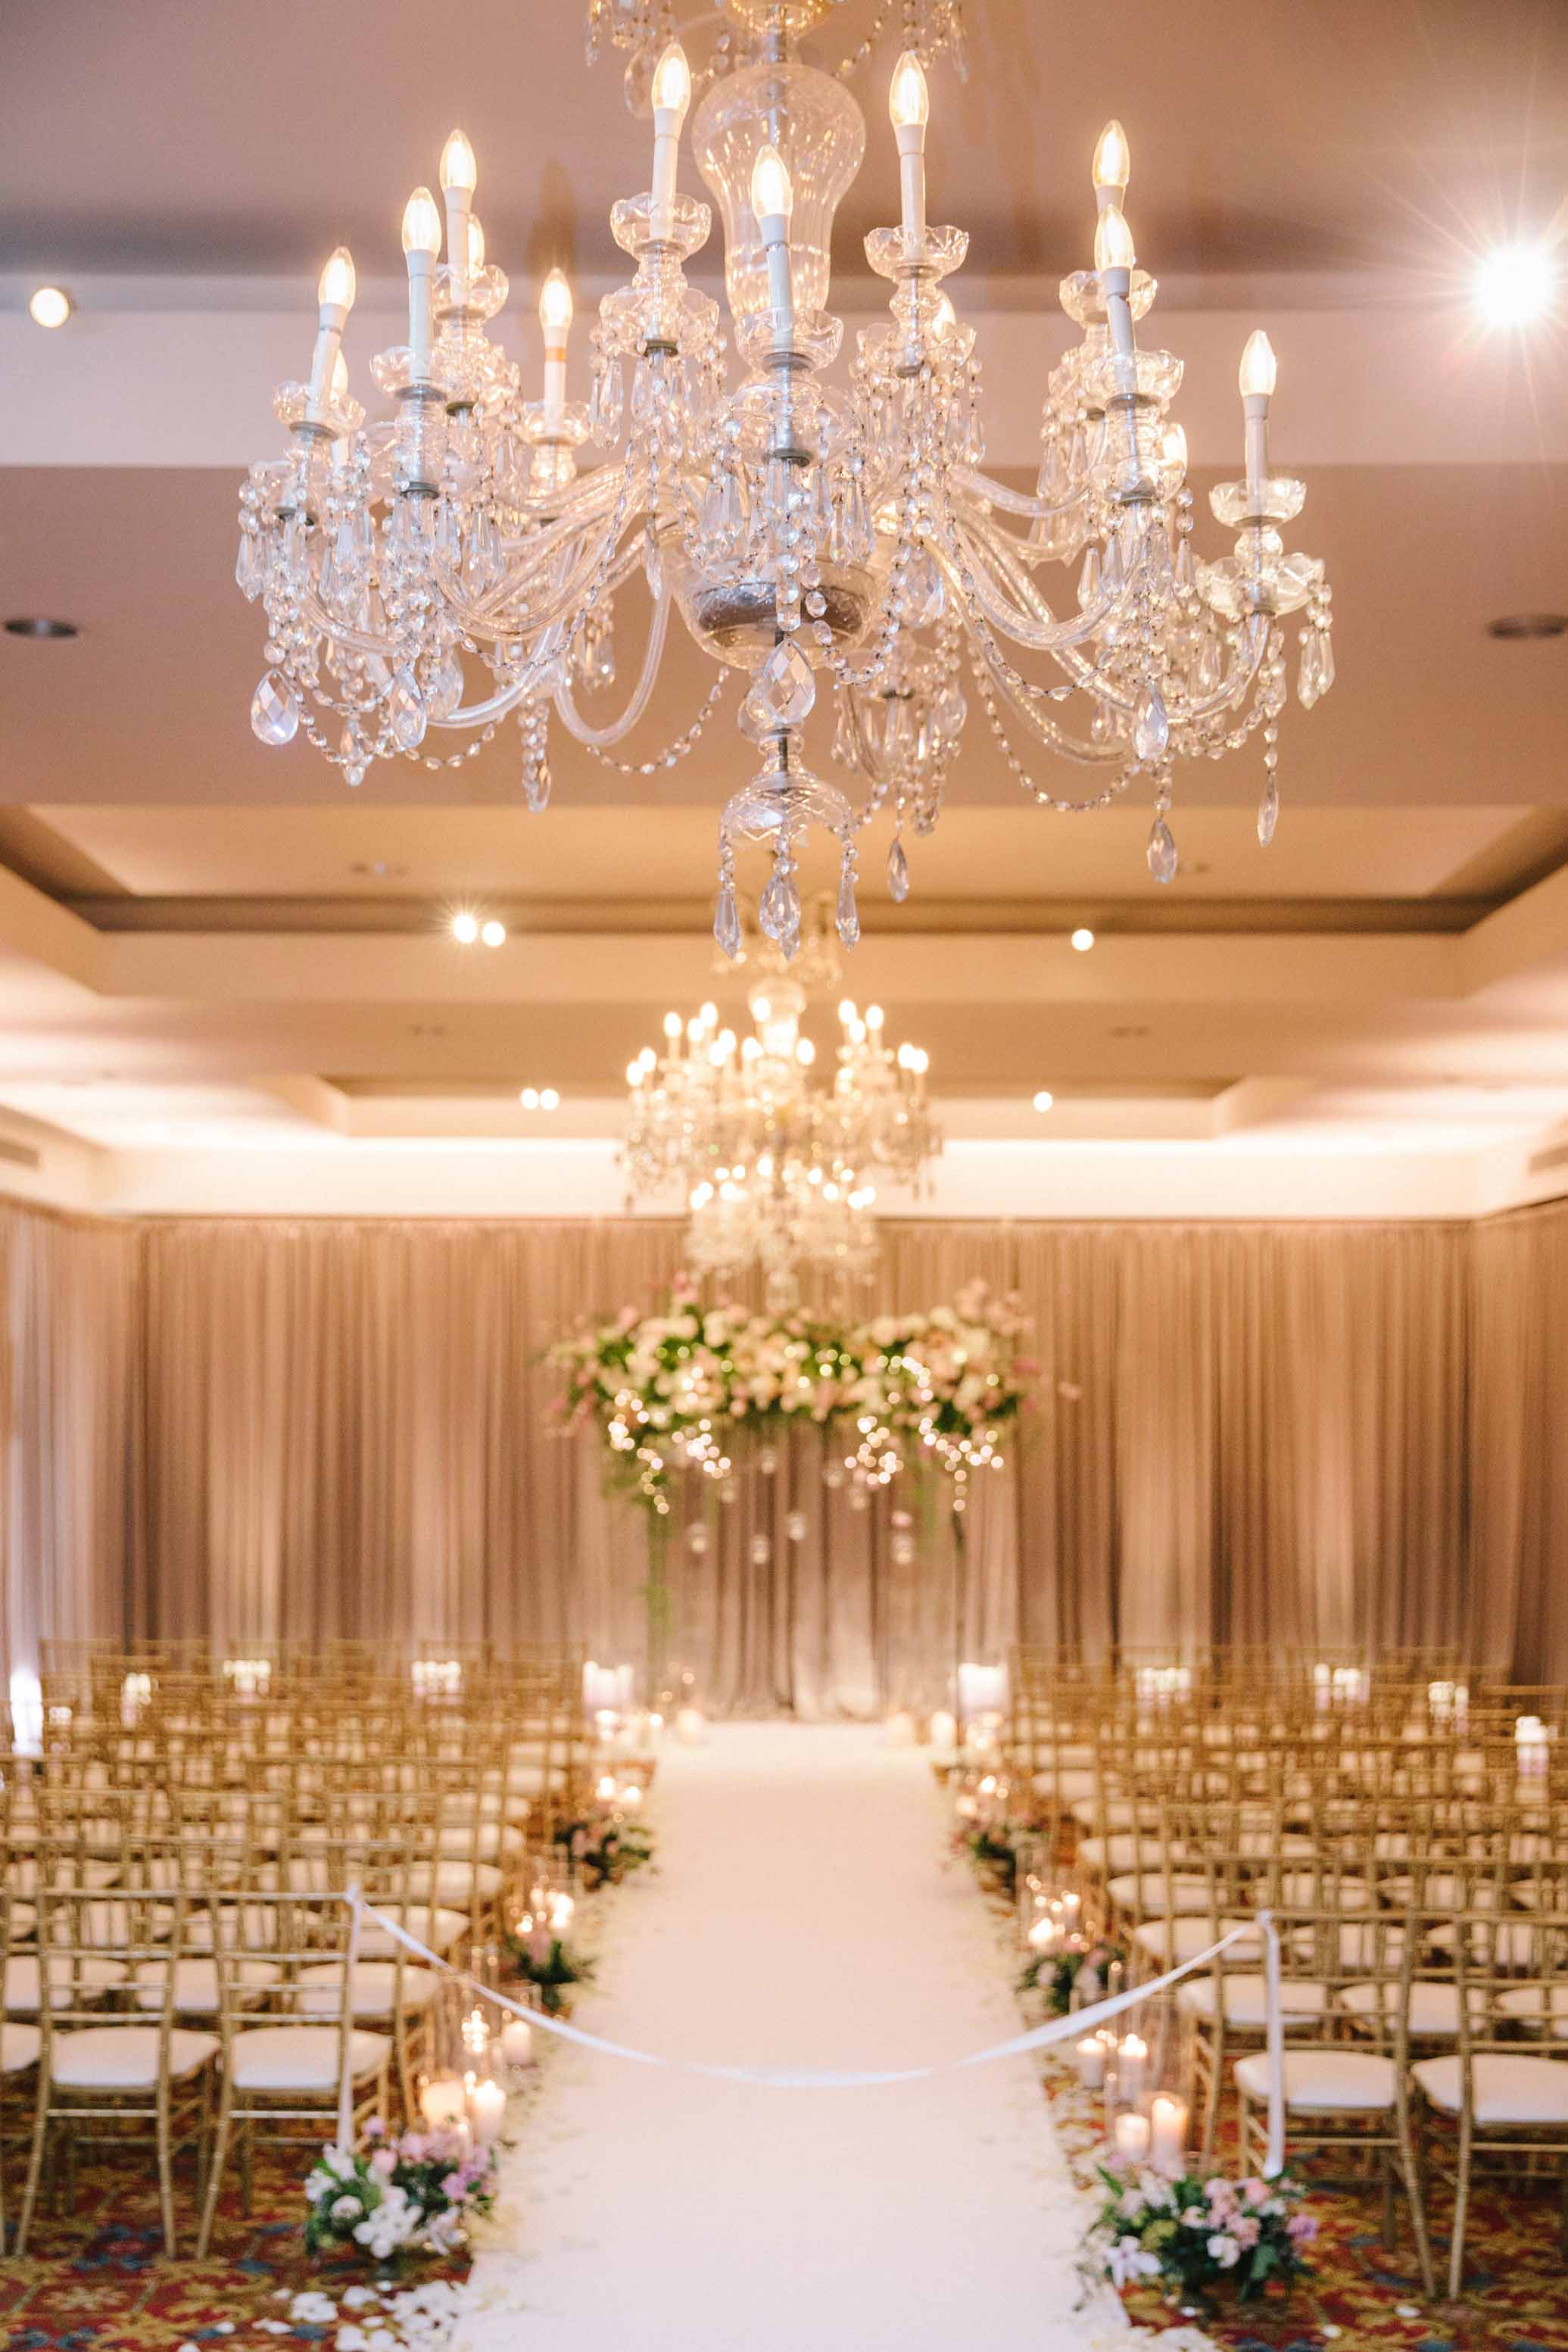 Wedding ceremony in hotel ballroom with crystal chandelier and rows of gold chairs